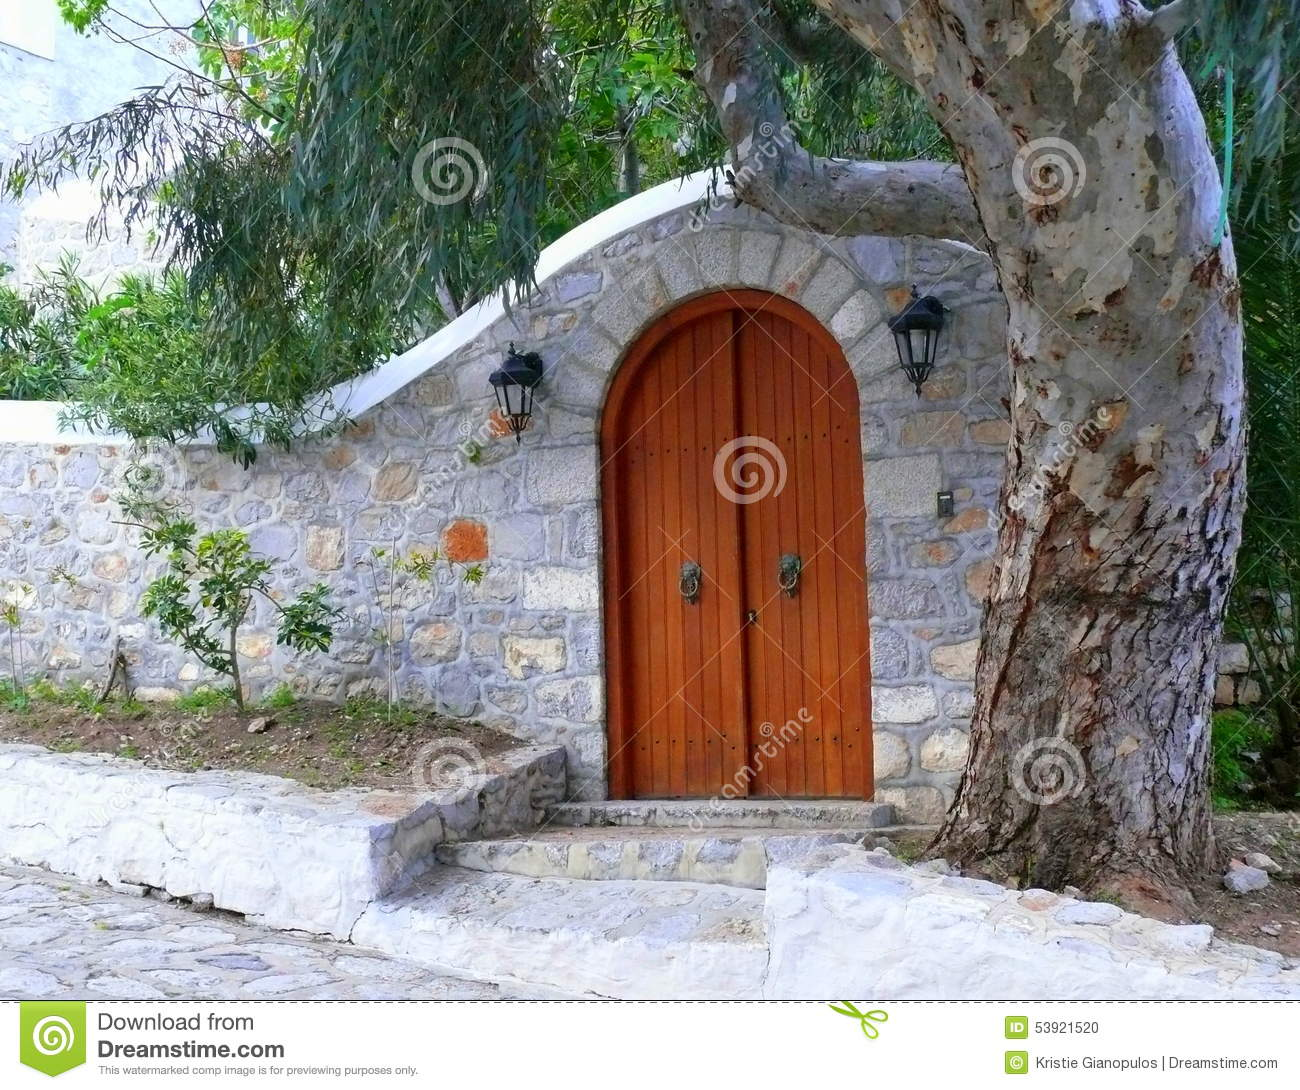 Stock Photo Arched Stone Courtyard Entry Wall Arched Wooden Door Masonry Paneled Wood Lantern Lights Old Mature Sycamore Tree Image53921520 on Small House Plans With Courtyard